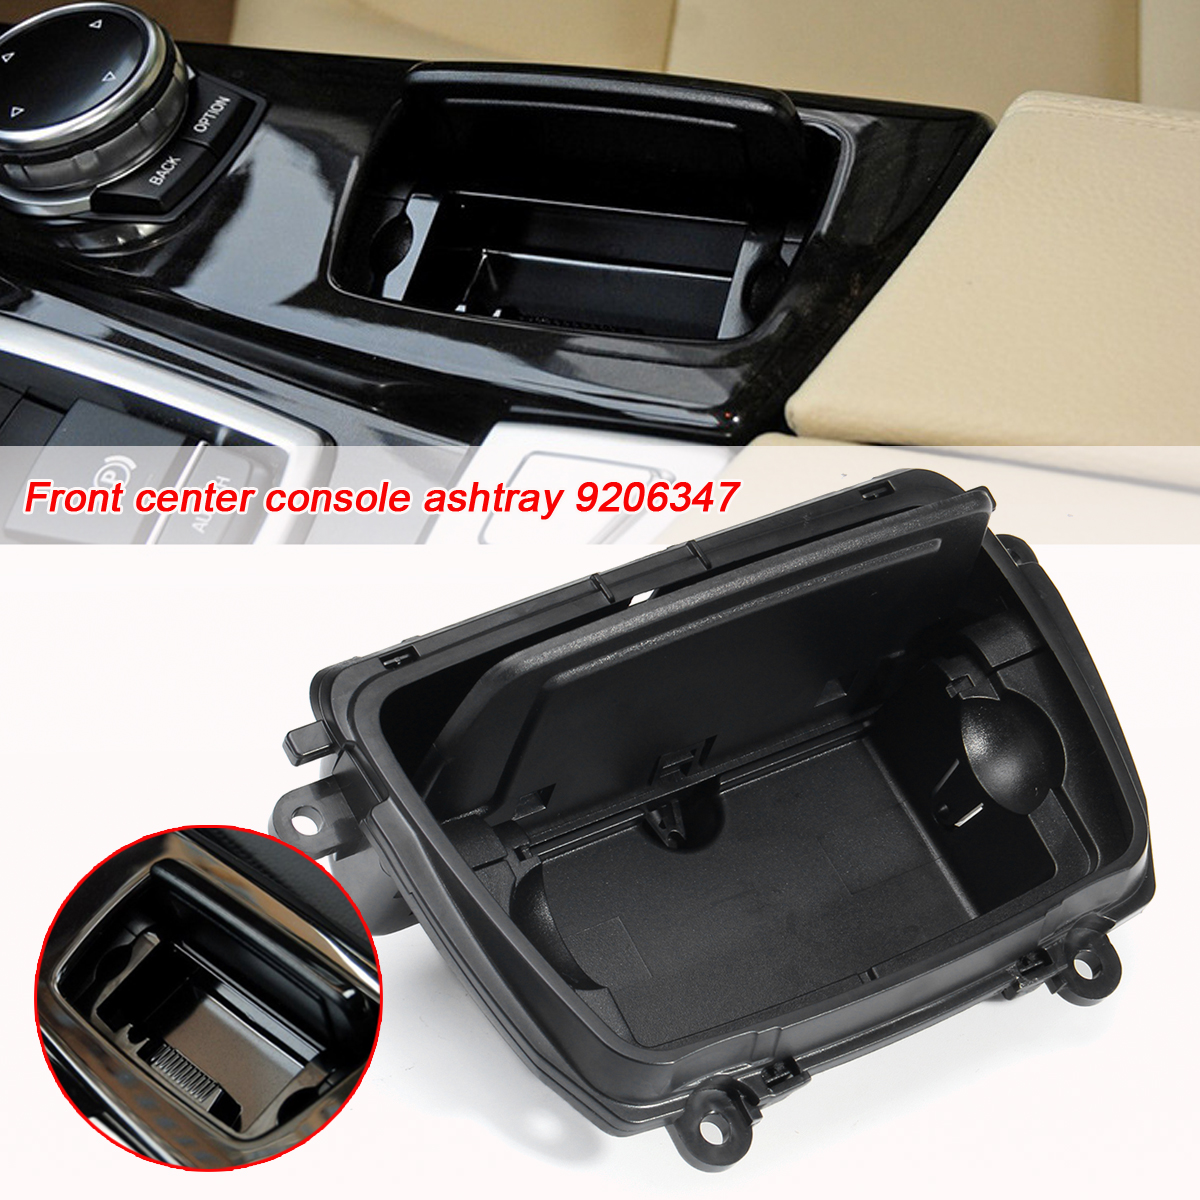 Audew Black Plastic Center Console Ashtray Assembly Box Fits For BMW 5 Series F10 F11 F18 520 51169206347